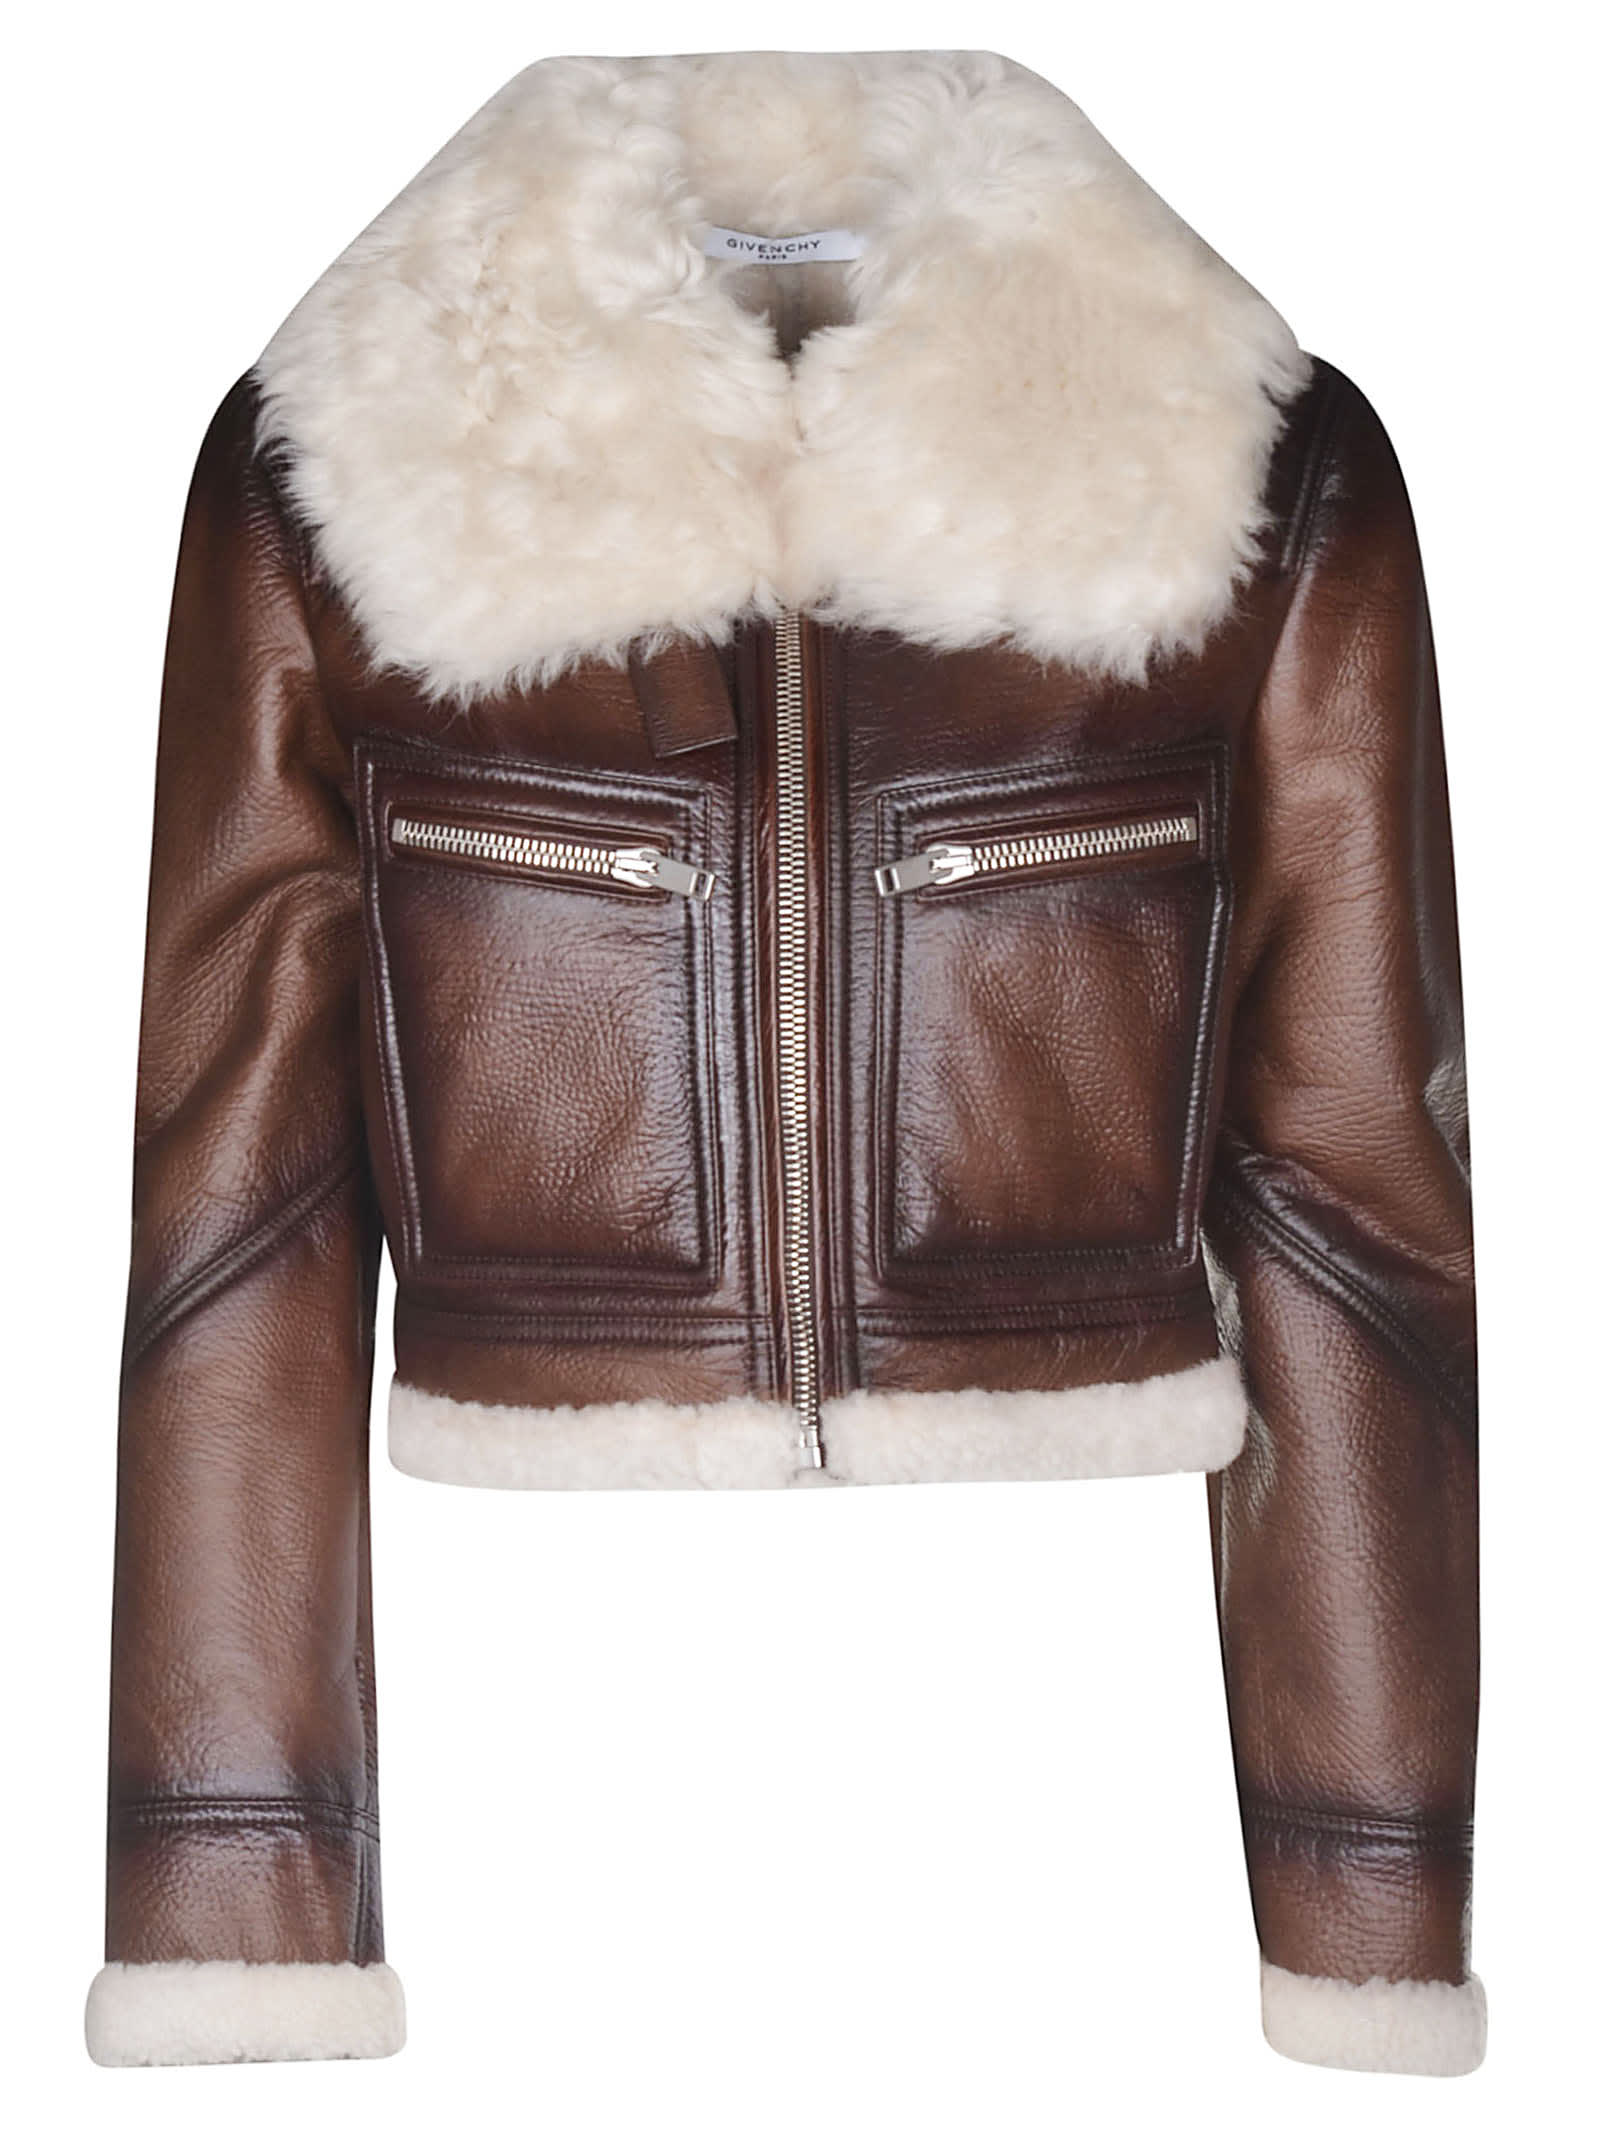 Givenchy Shearling Jacket